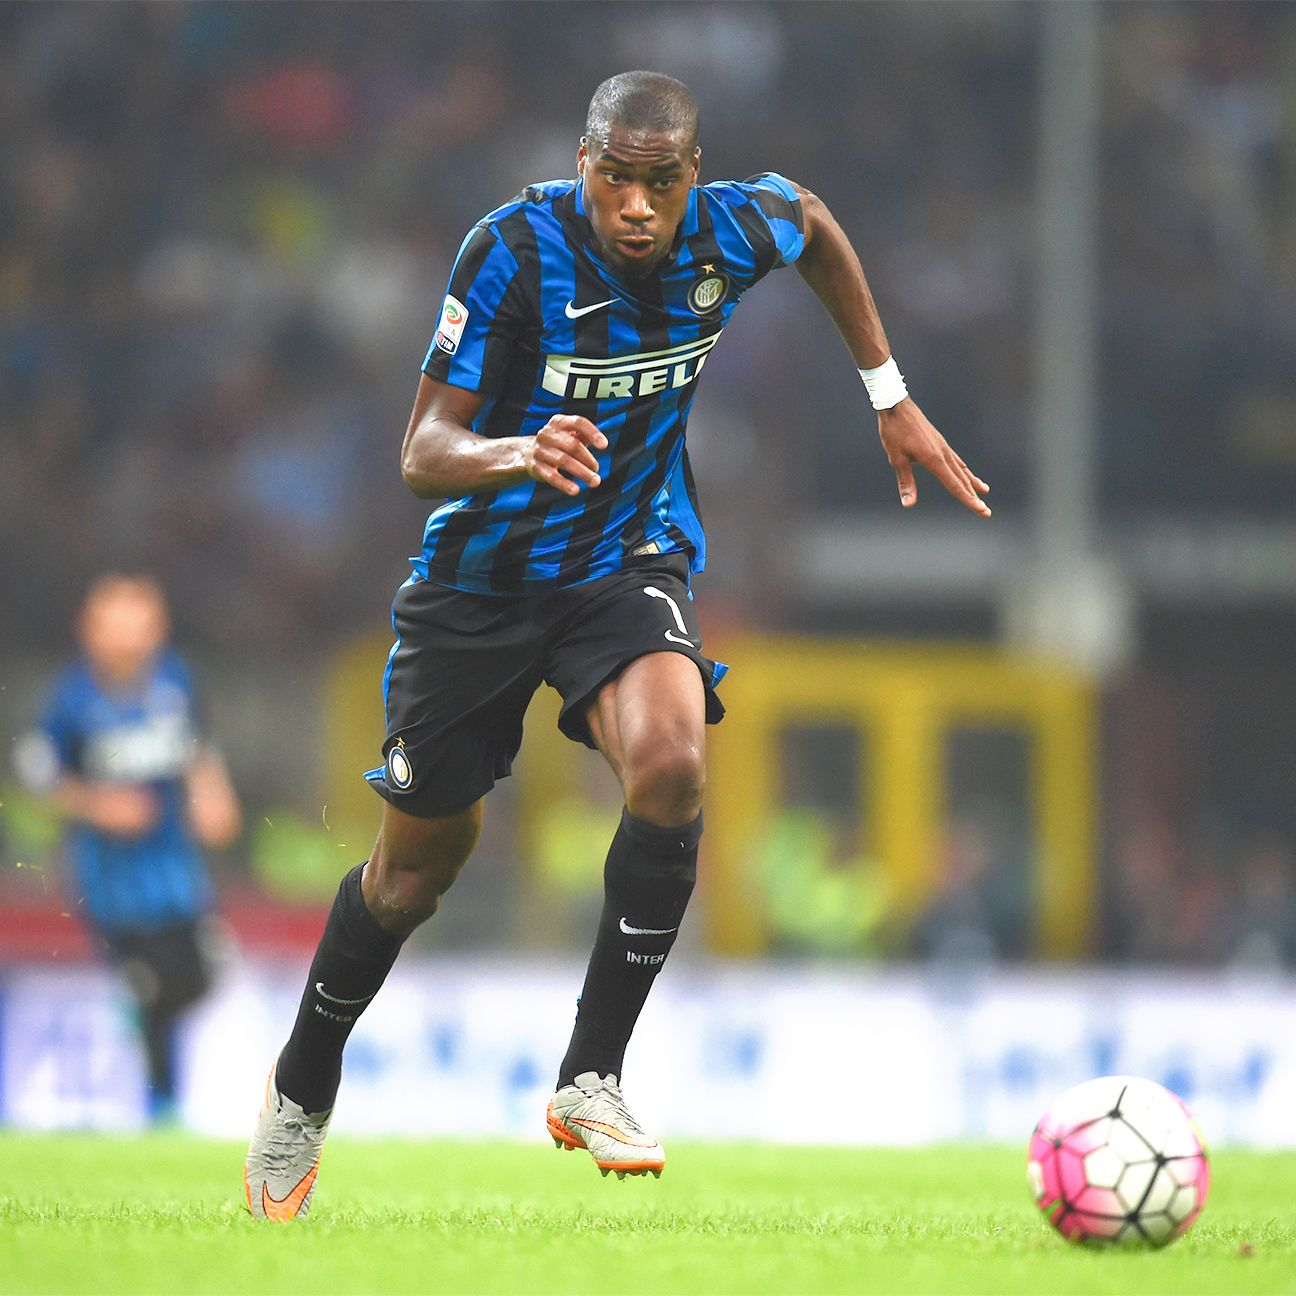 Inter are failing to get the contribution that was expected from midfielder Geoffrey Kondogbia.